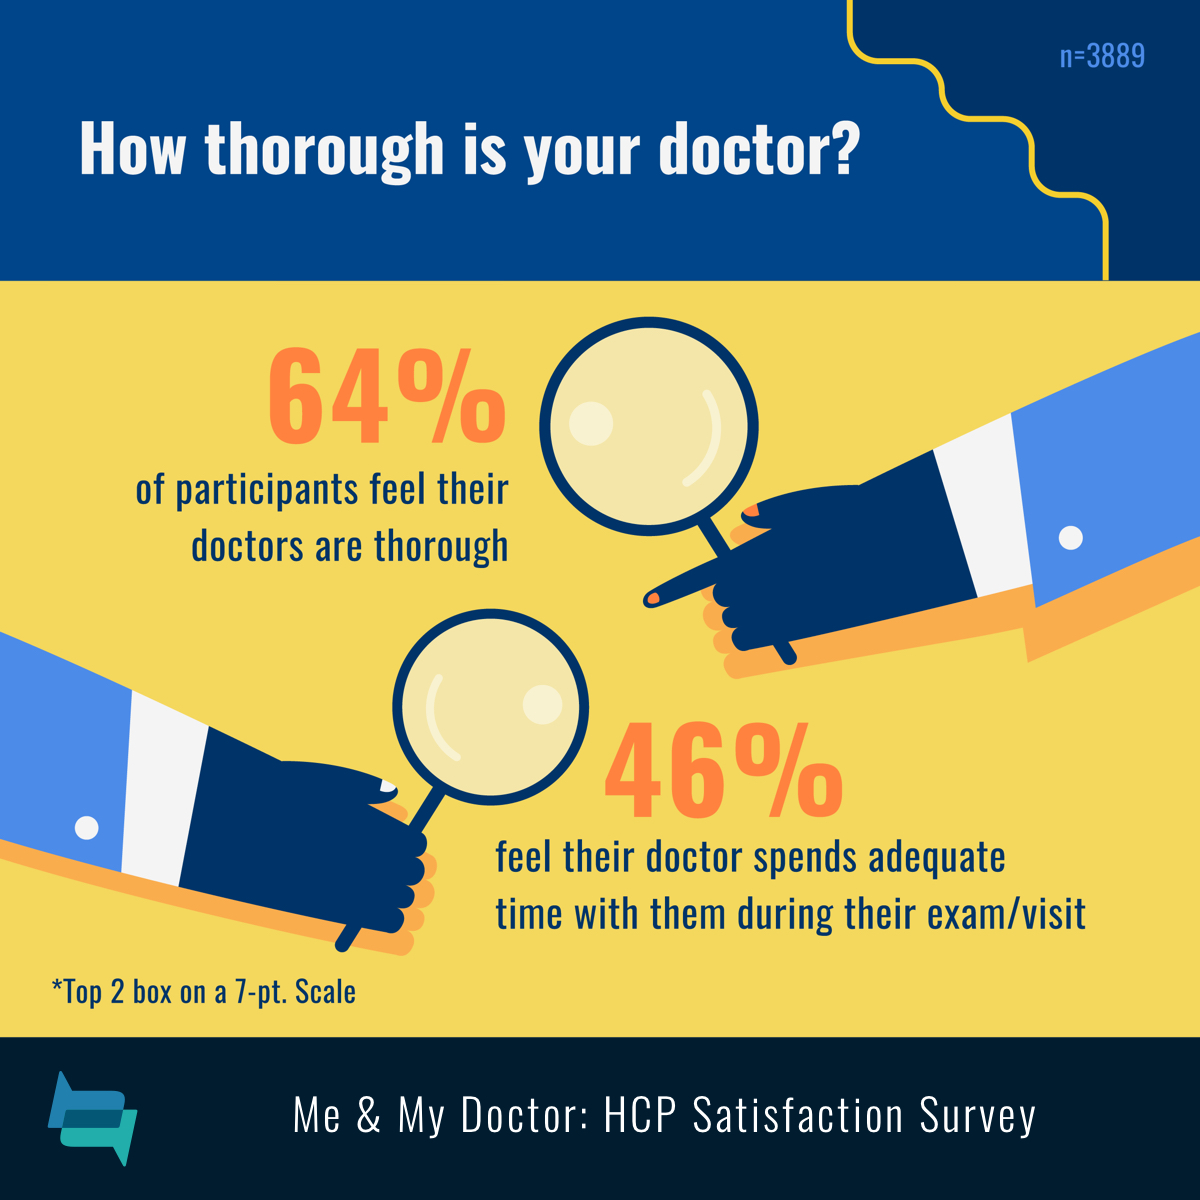 64% feel their doctors are thorough and 46% of participants feel their doctor spends adequate time with them.